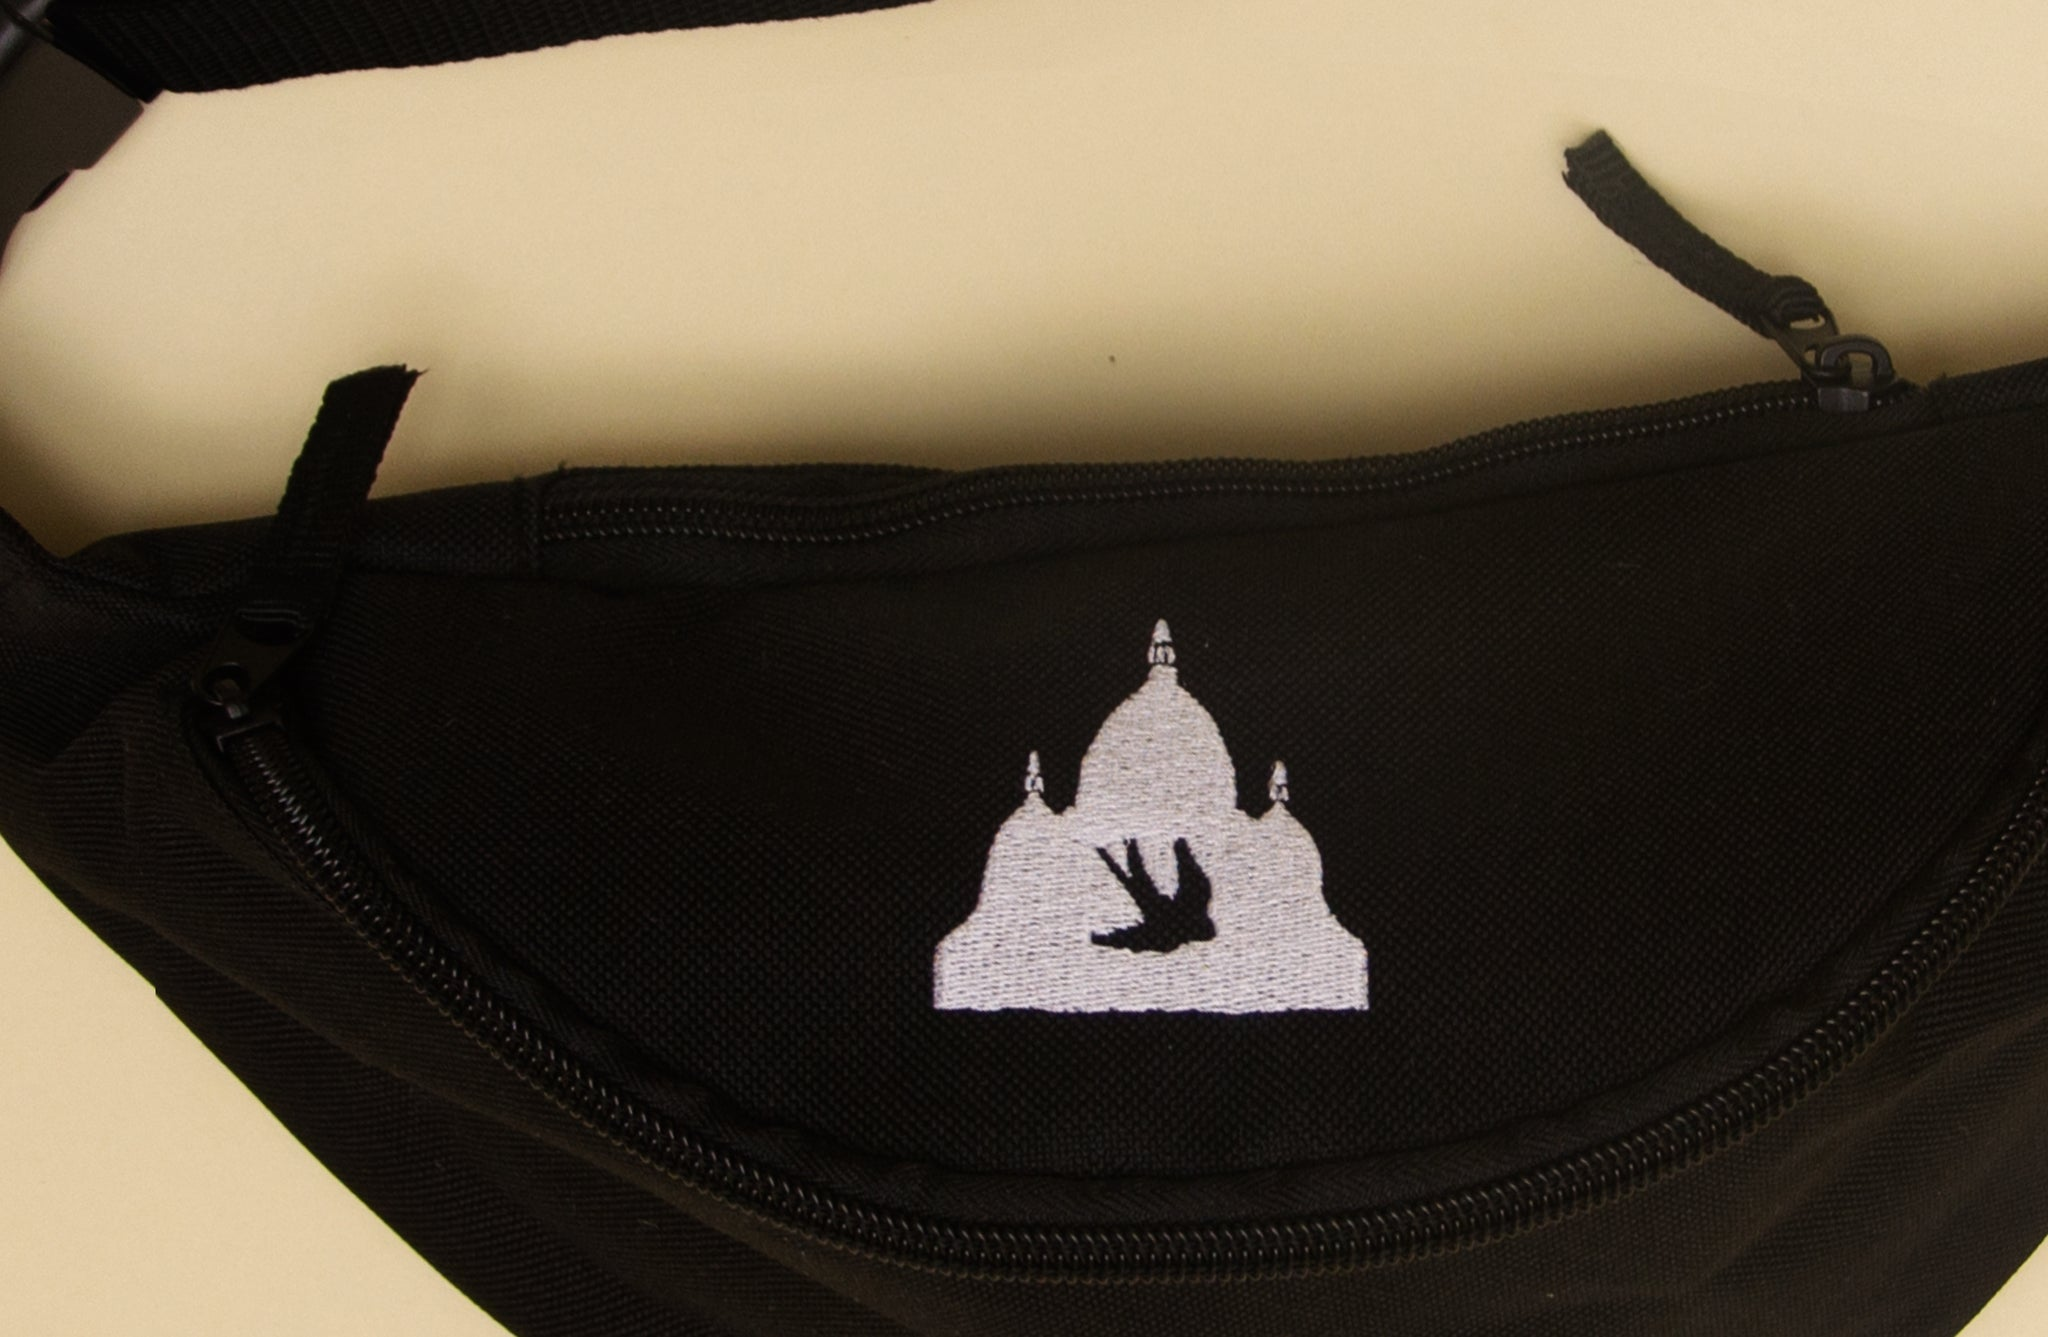 The North Hill Logo Fanny Pack is a made in France bag